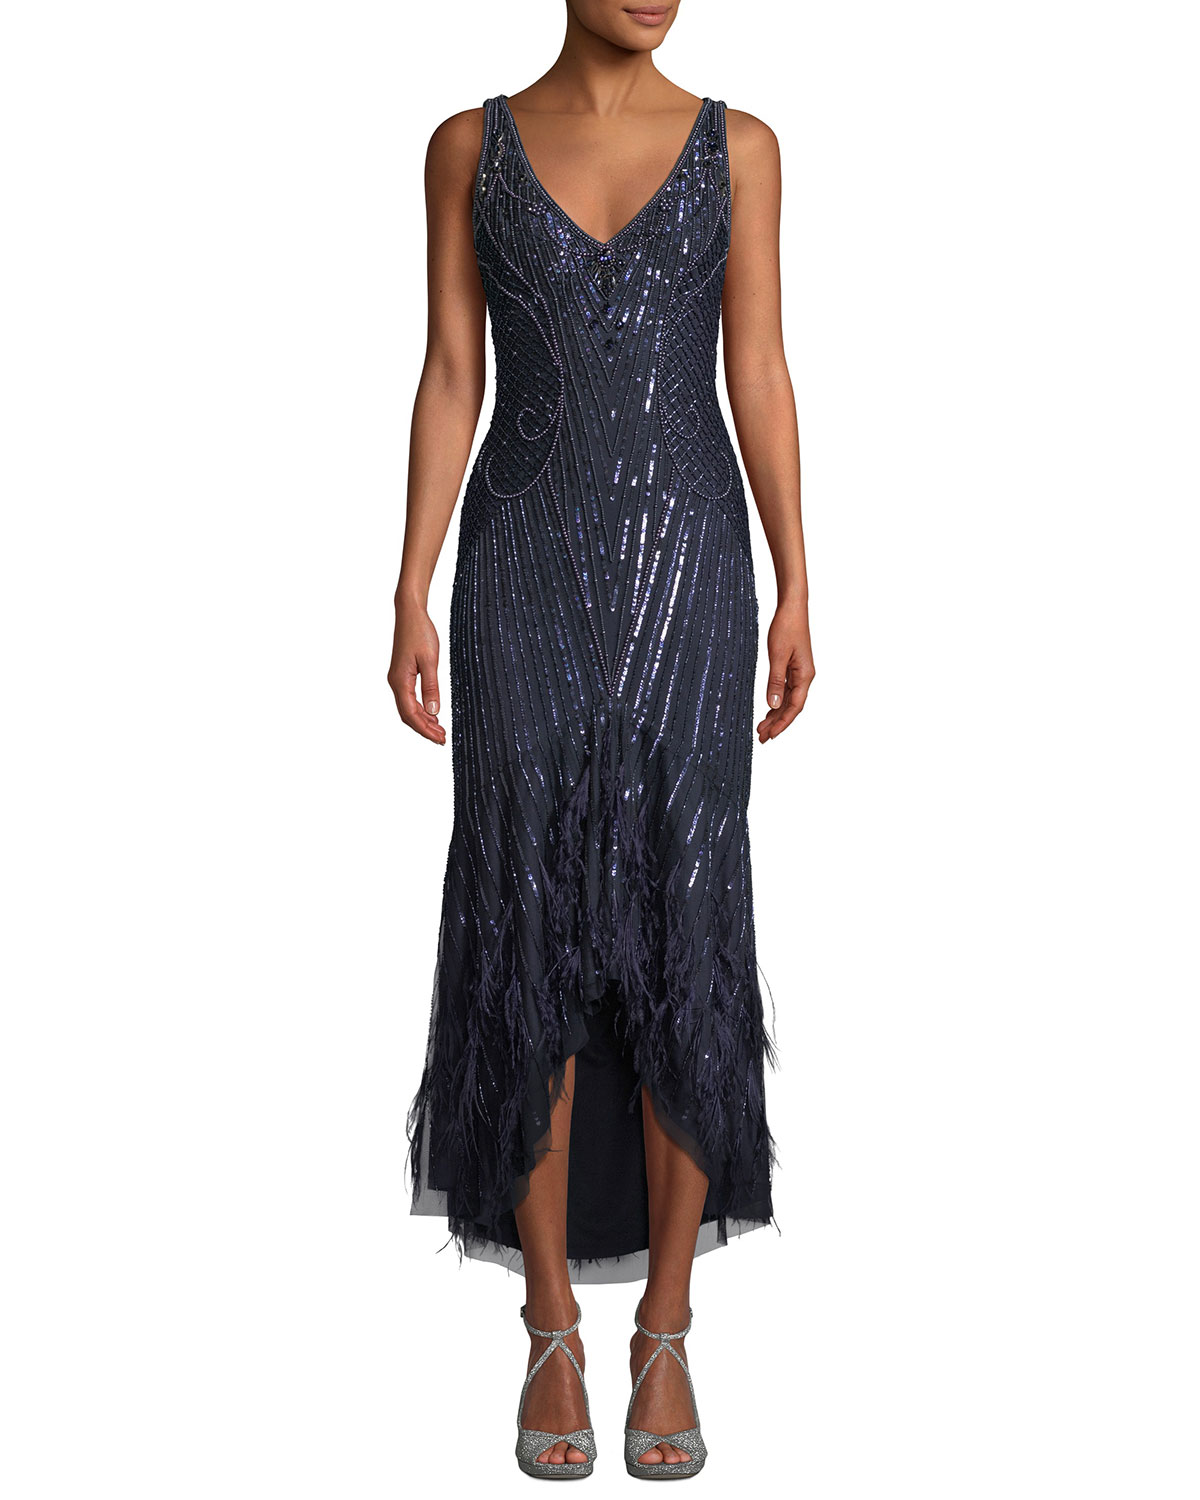 Feather Dressing Gown: Parker Black Sydney Beaded High-Low Gown Dress W/ Feather